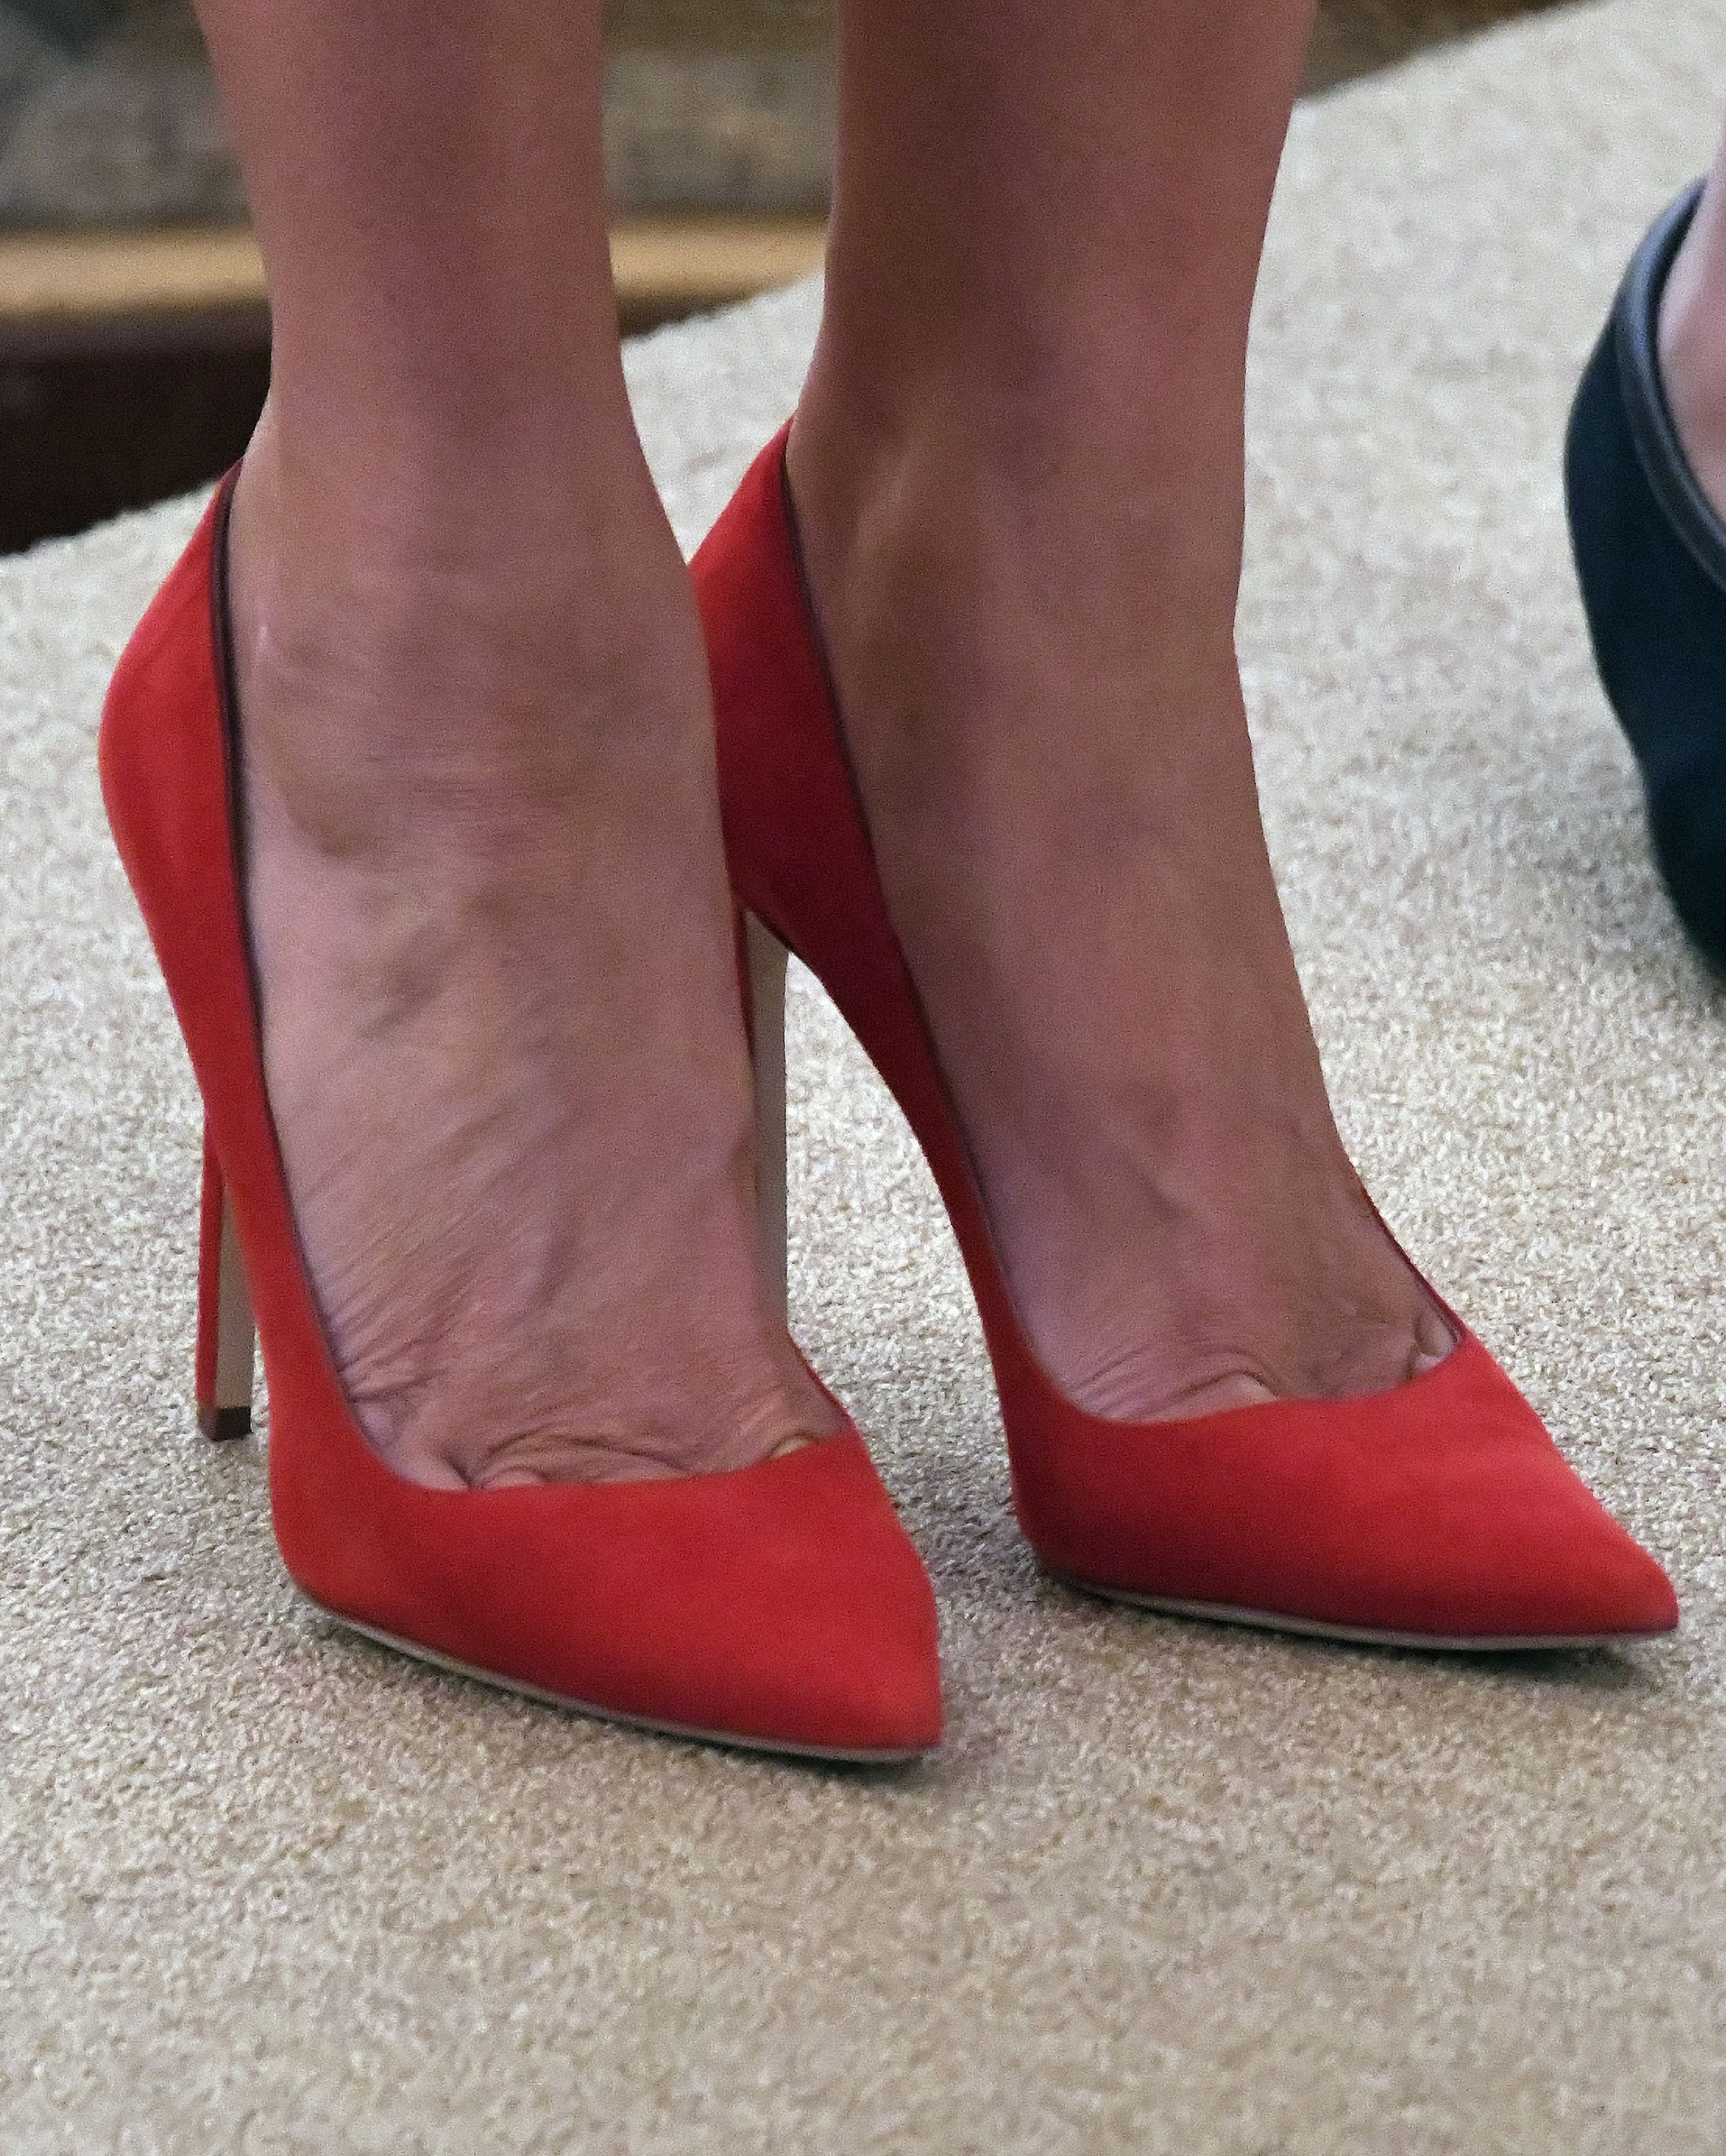 Red shoes worn by first lady Melania Trump as she and United States President Donald J. Trump host a Hispanic Heritage Month at the White House in Washington, D.C., Oct. 6, 2017.